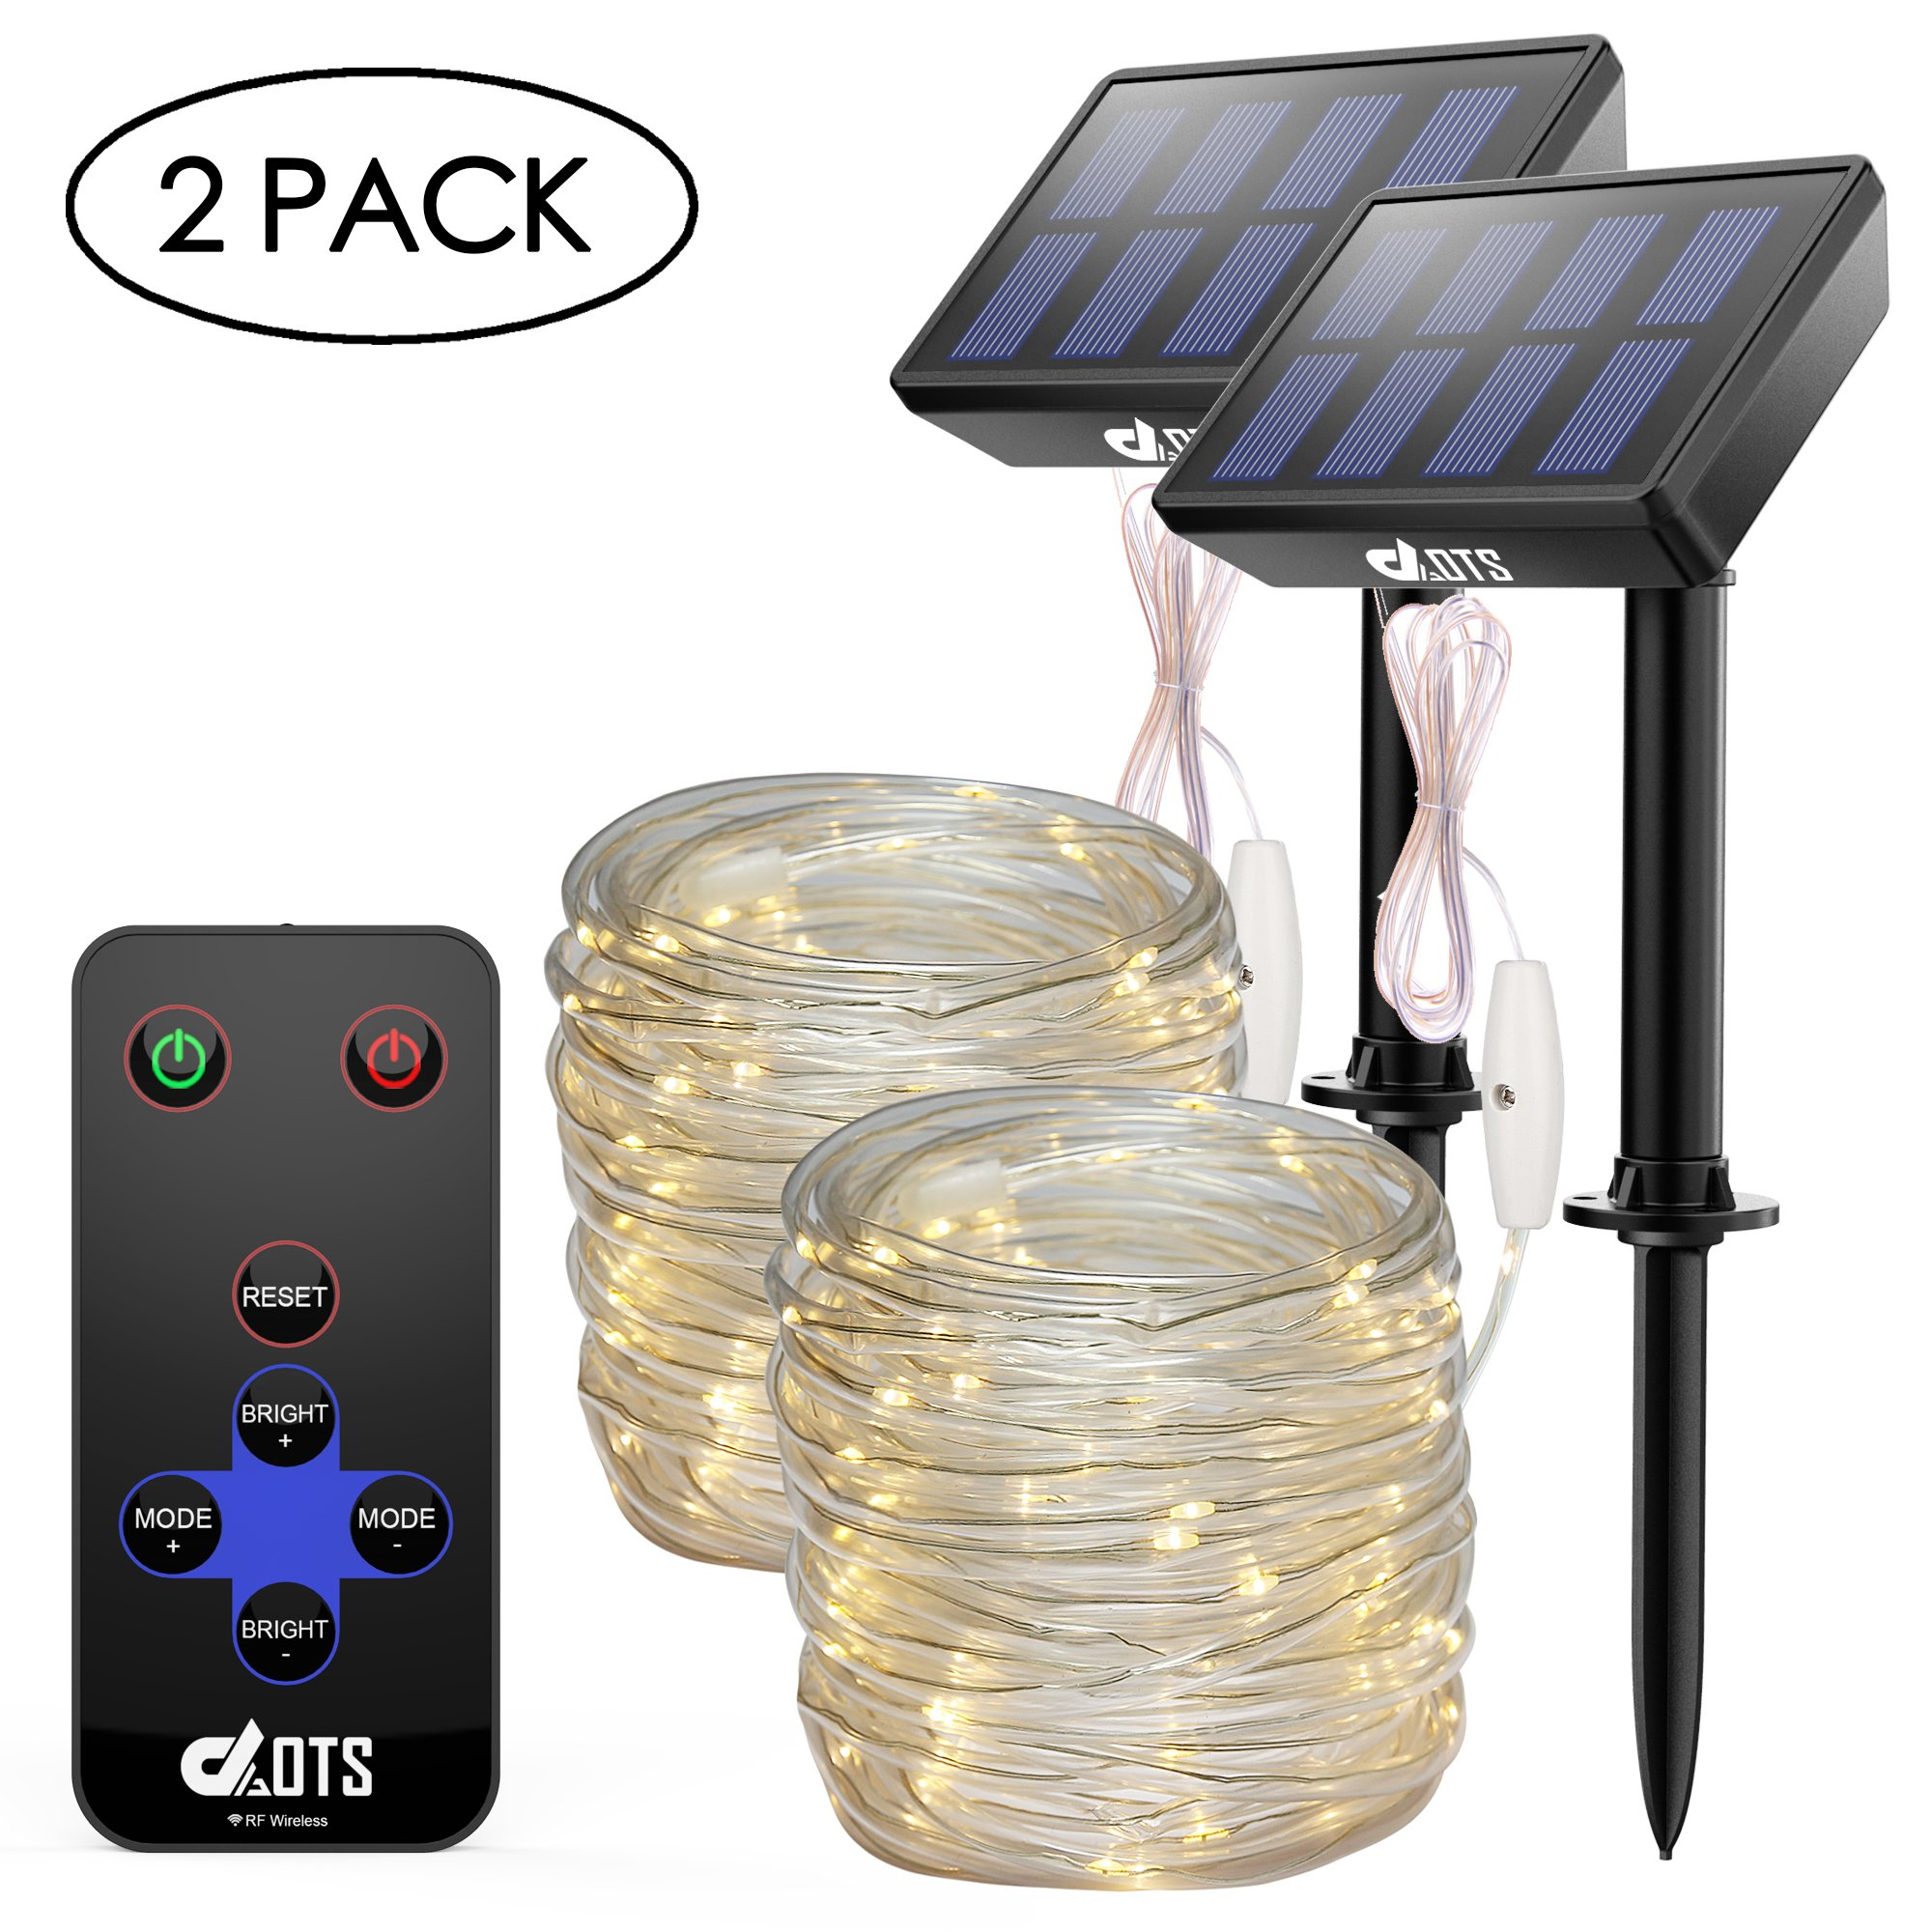 DAOTS Solar Powered String Lights Outdoor with Remote, 33ft 100 LED Rope Lights for Christmas Tree, Party, Garden, Patio Deco Waterproof Copper Wire Fairy Lights with Clips (Warm White, 2Pack)